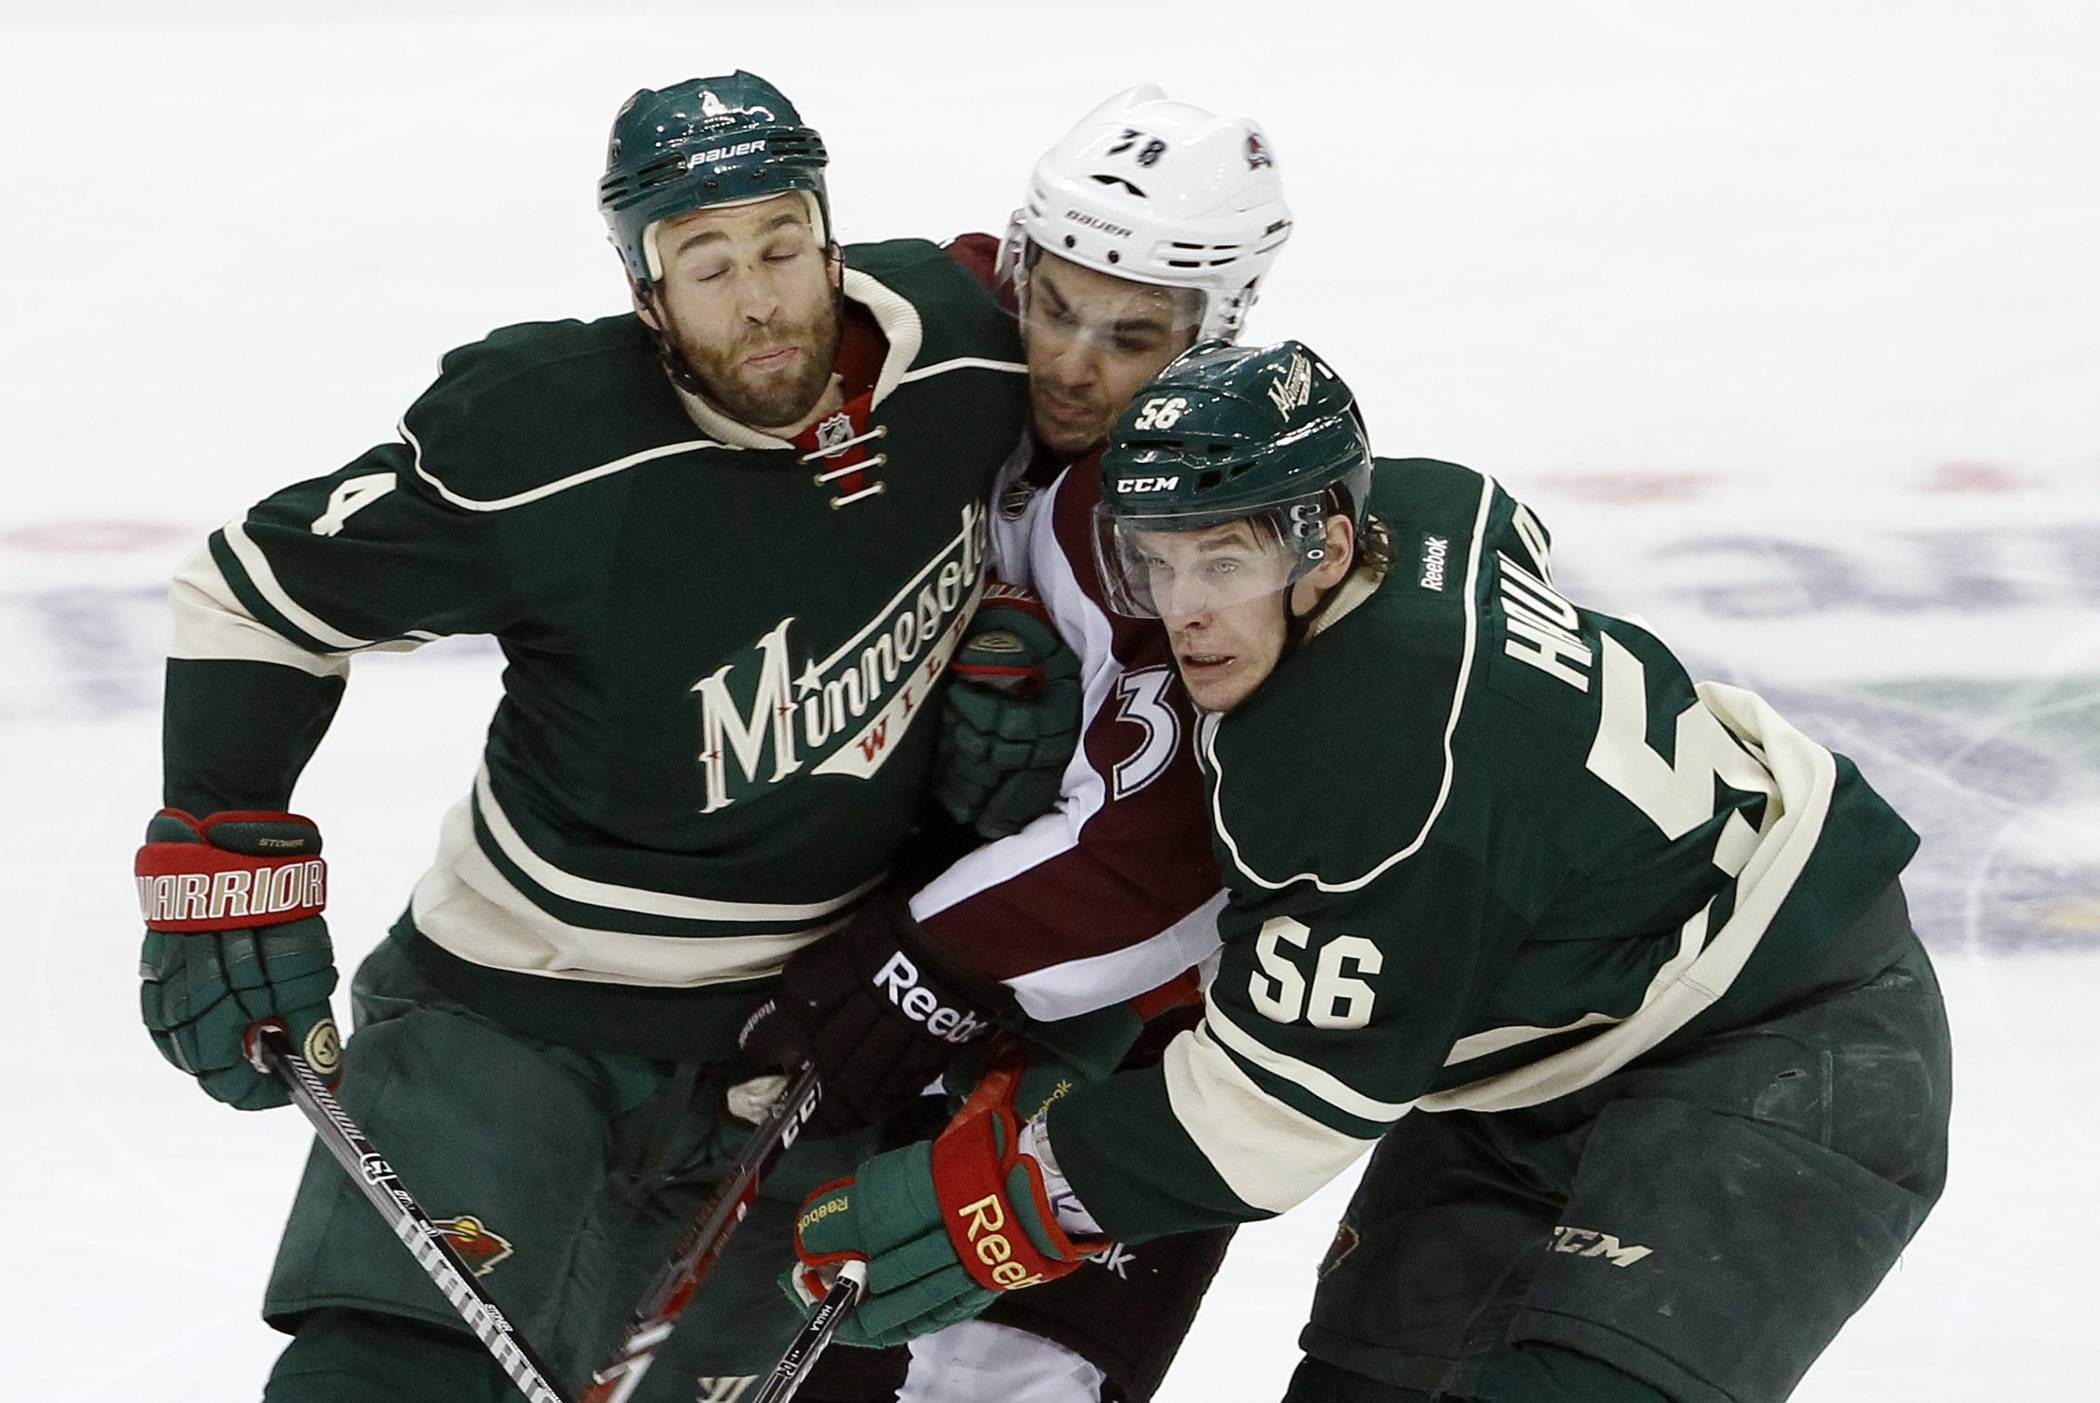 Colorado Avalanche center Joey Hishon is sandwiched between Minnesota Wild defenseman Clayton Stoner, left, and left wing Erik Haula (56), of Finland, during the first period of Game 4 of an NHL hockey first-round playoff series in St. Paul, Minn., Thursday, April 24, 2014. (AP Photo/Ann Heisenfelt)